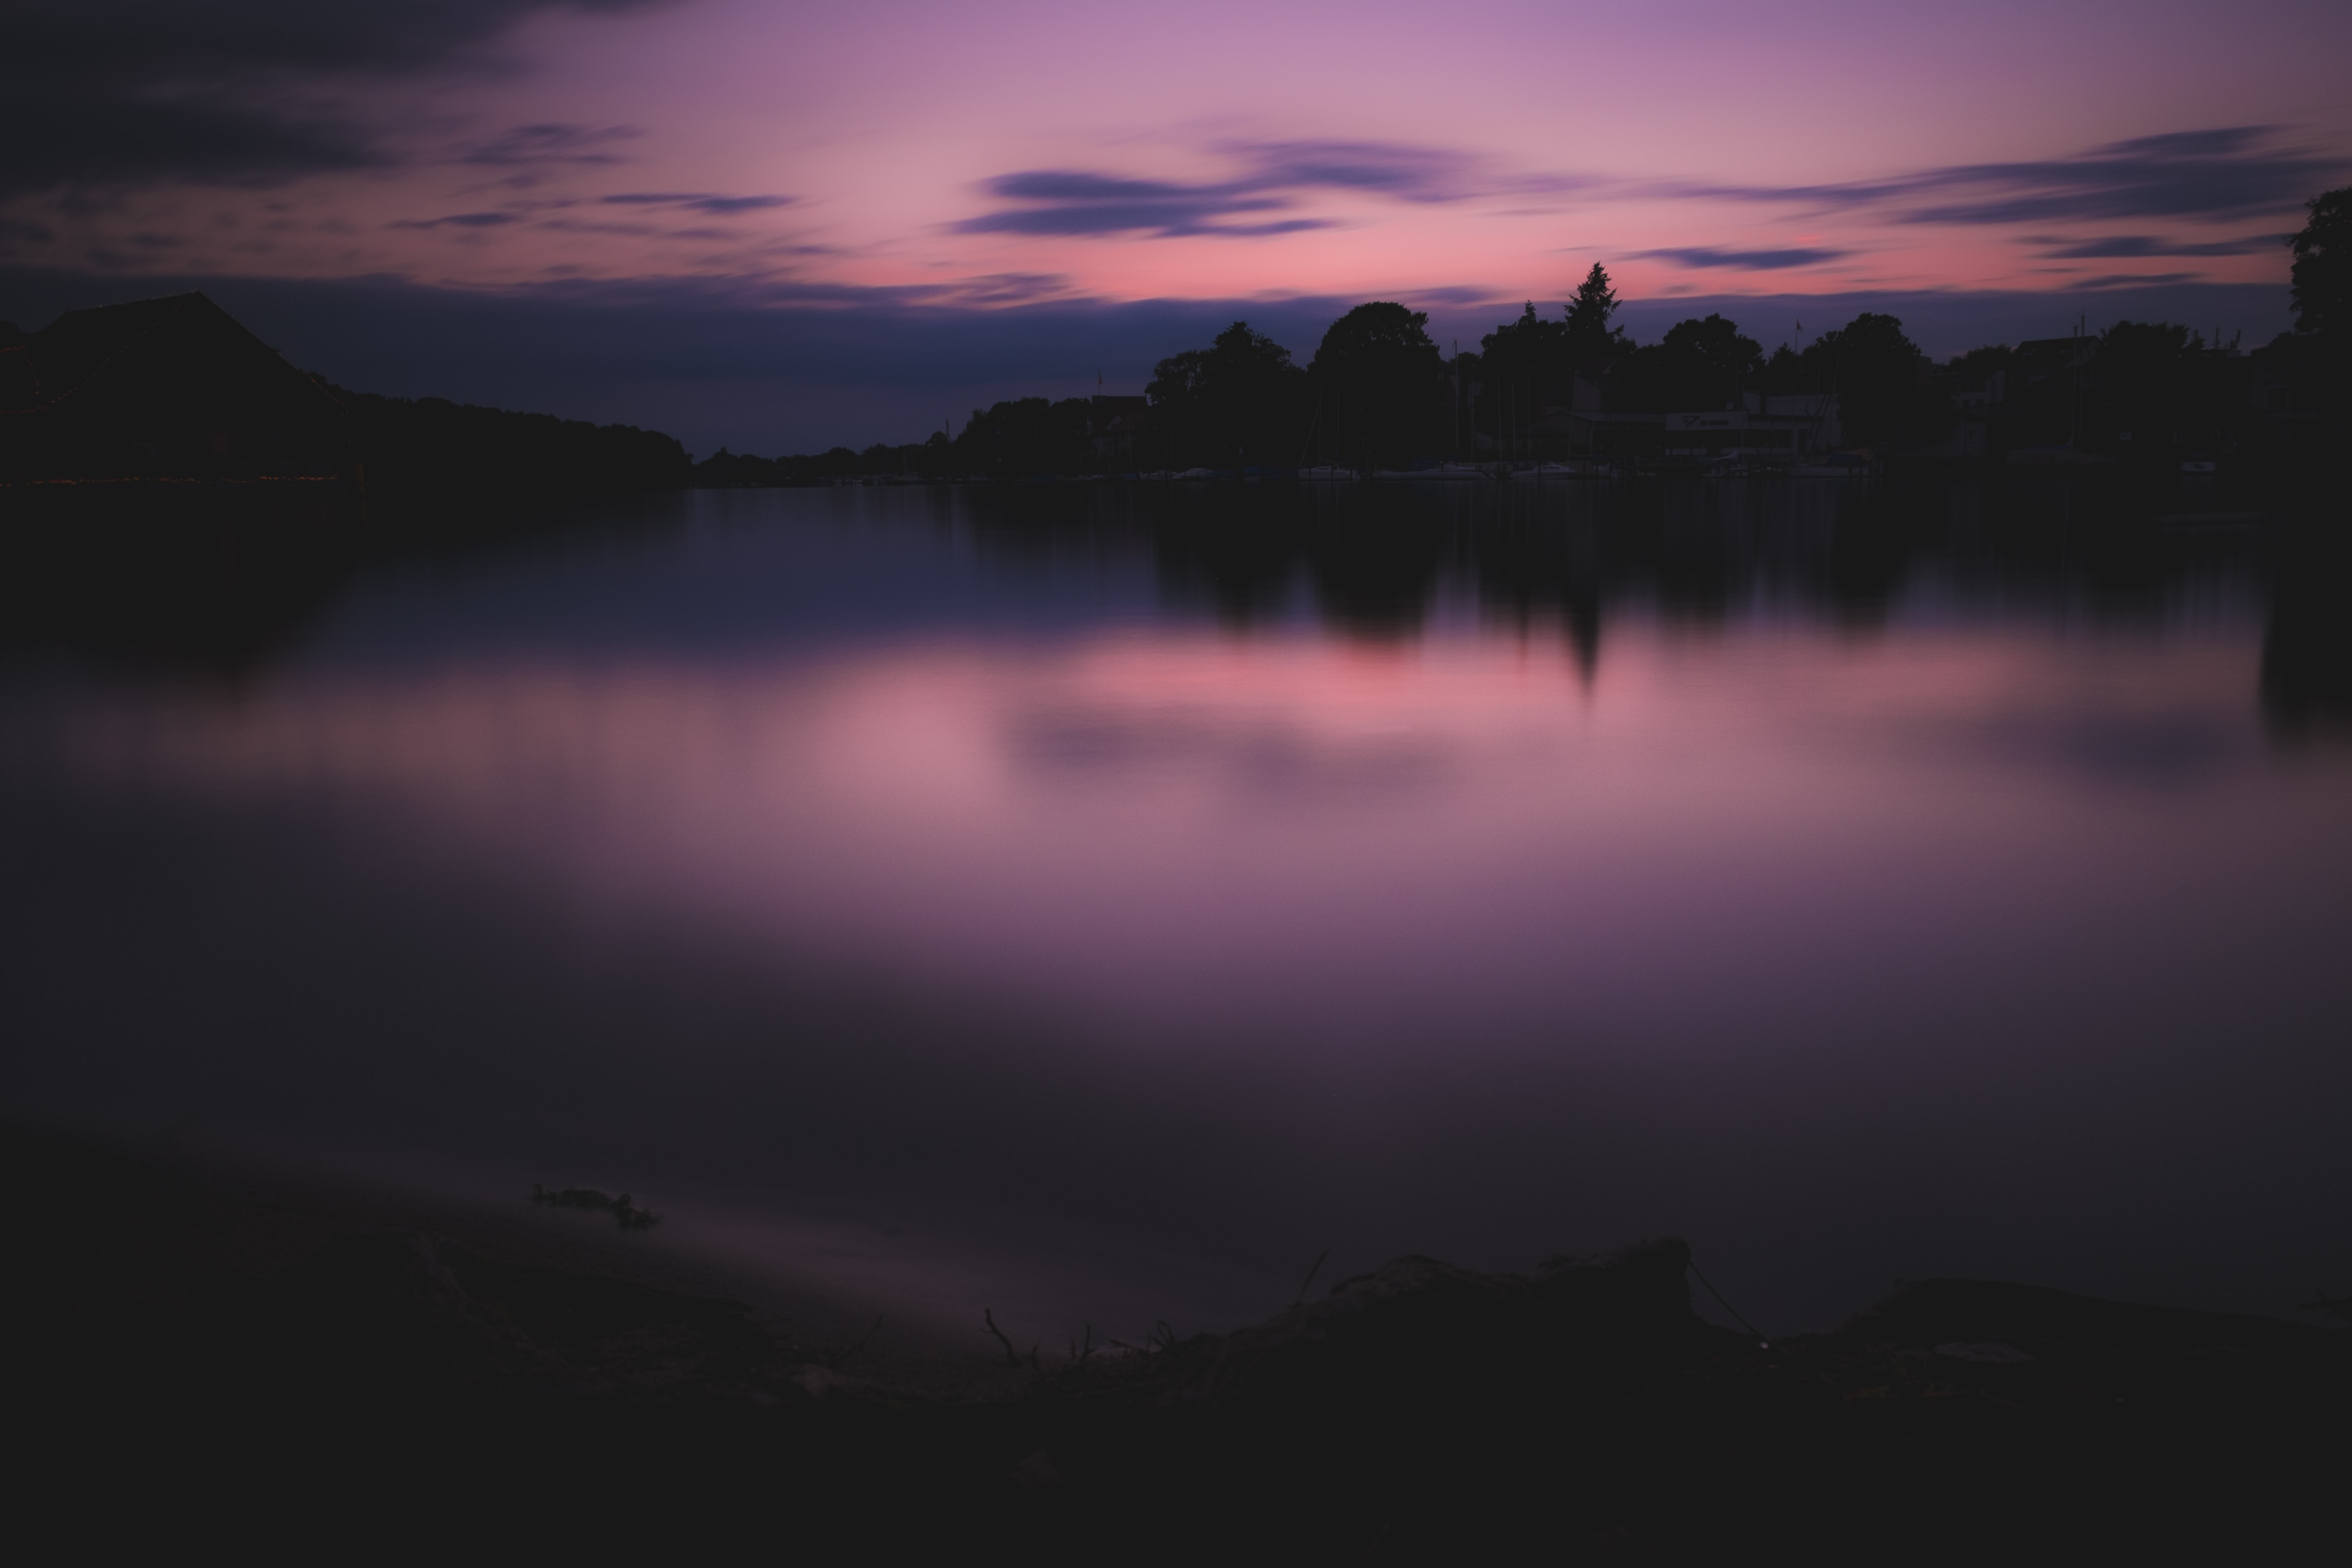 The sunset casting a purple reflection at twilight in the Müggelsee lake, Berlin, Germany